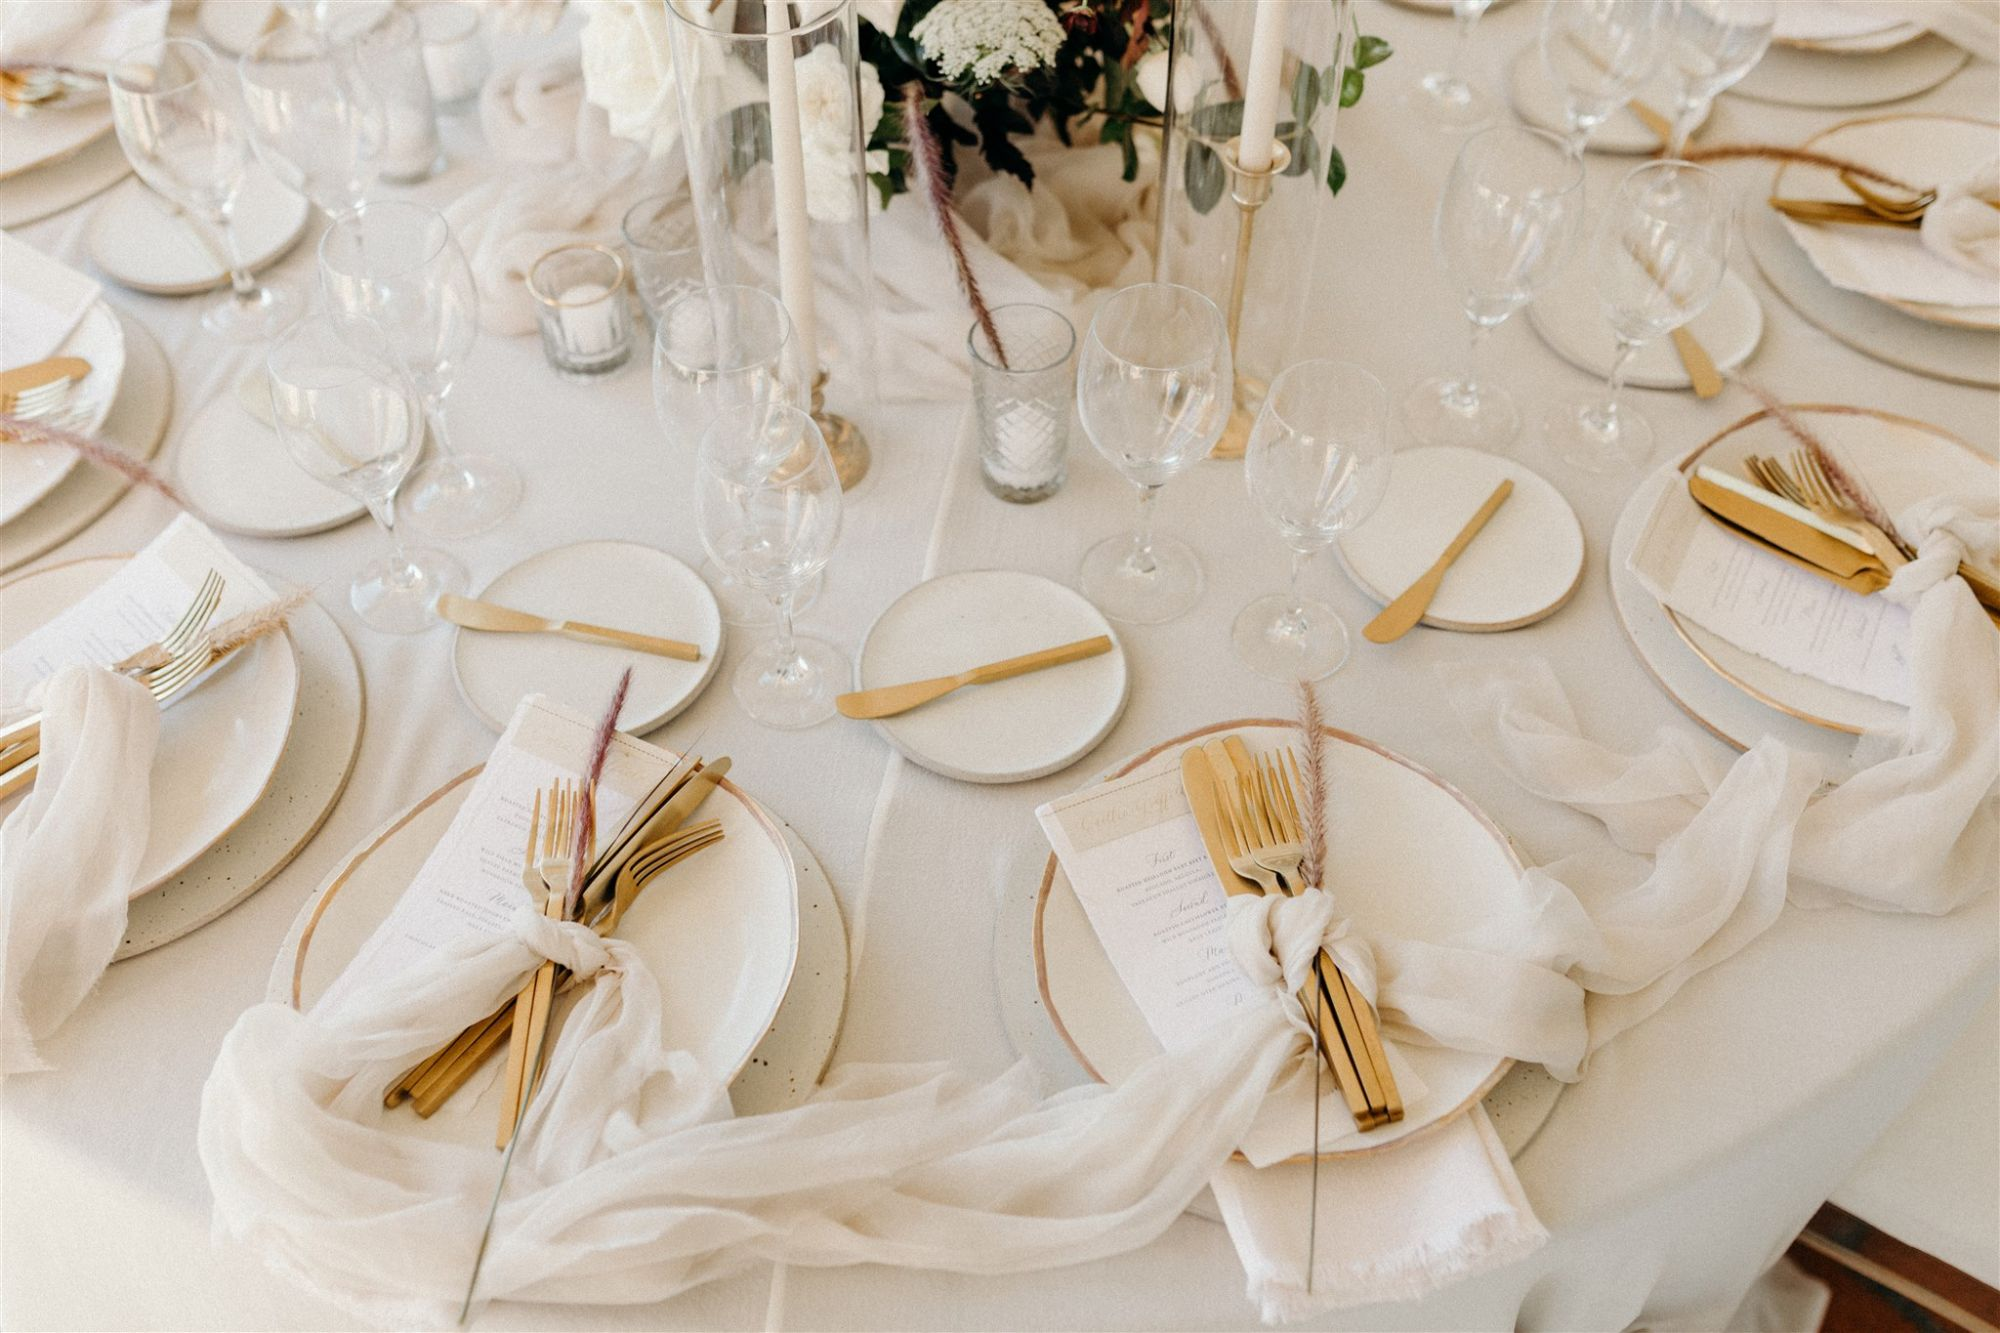 Wedding Inspiration: 5 Trends For Your Special Day